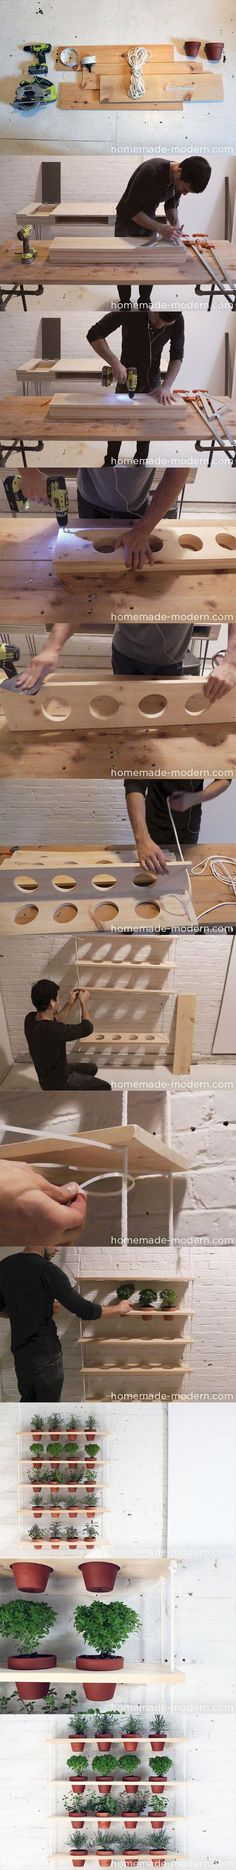 Create a mini garden to grow your herbs and vegetables with a 5 shelve wooden tier storing your terracota pots. DIY Amazing Do It Yourself Craft Ideas - 40 Pics Diy Projects To Try, Home Projects, Craft Projects, Craft Ideas, Ideas Paso A Paso, Wood Crafts, Diy And Crafts, Do It Yourself Crafts, Diy Furniture